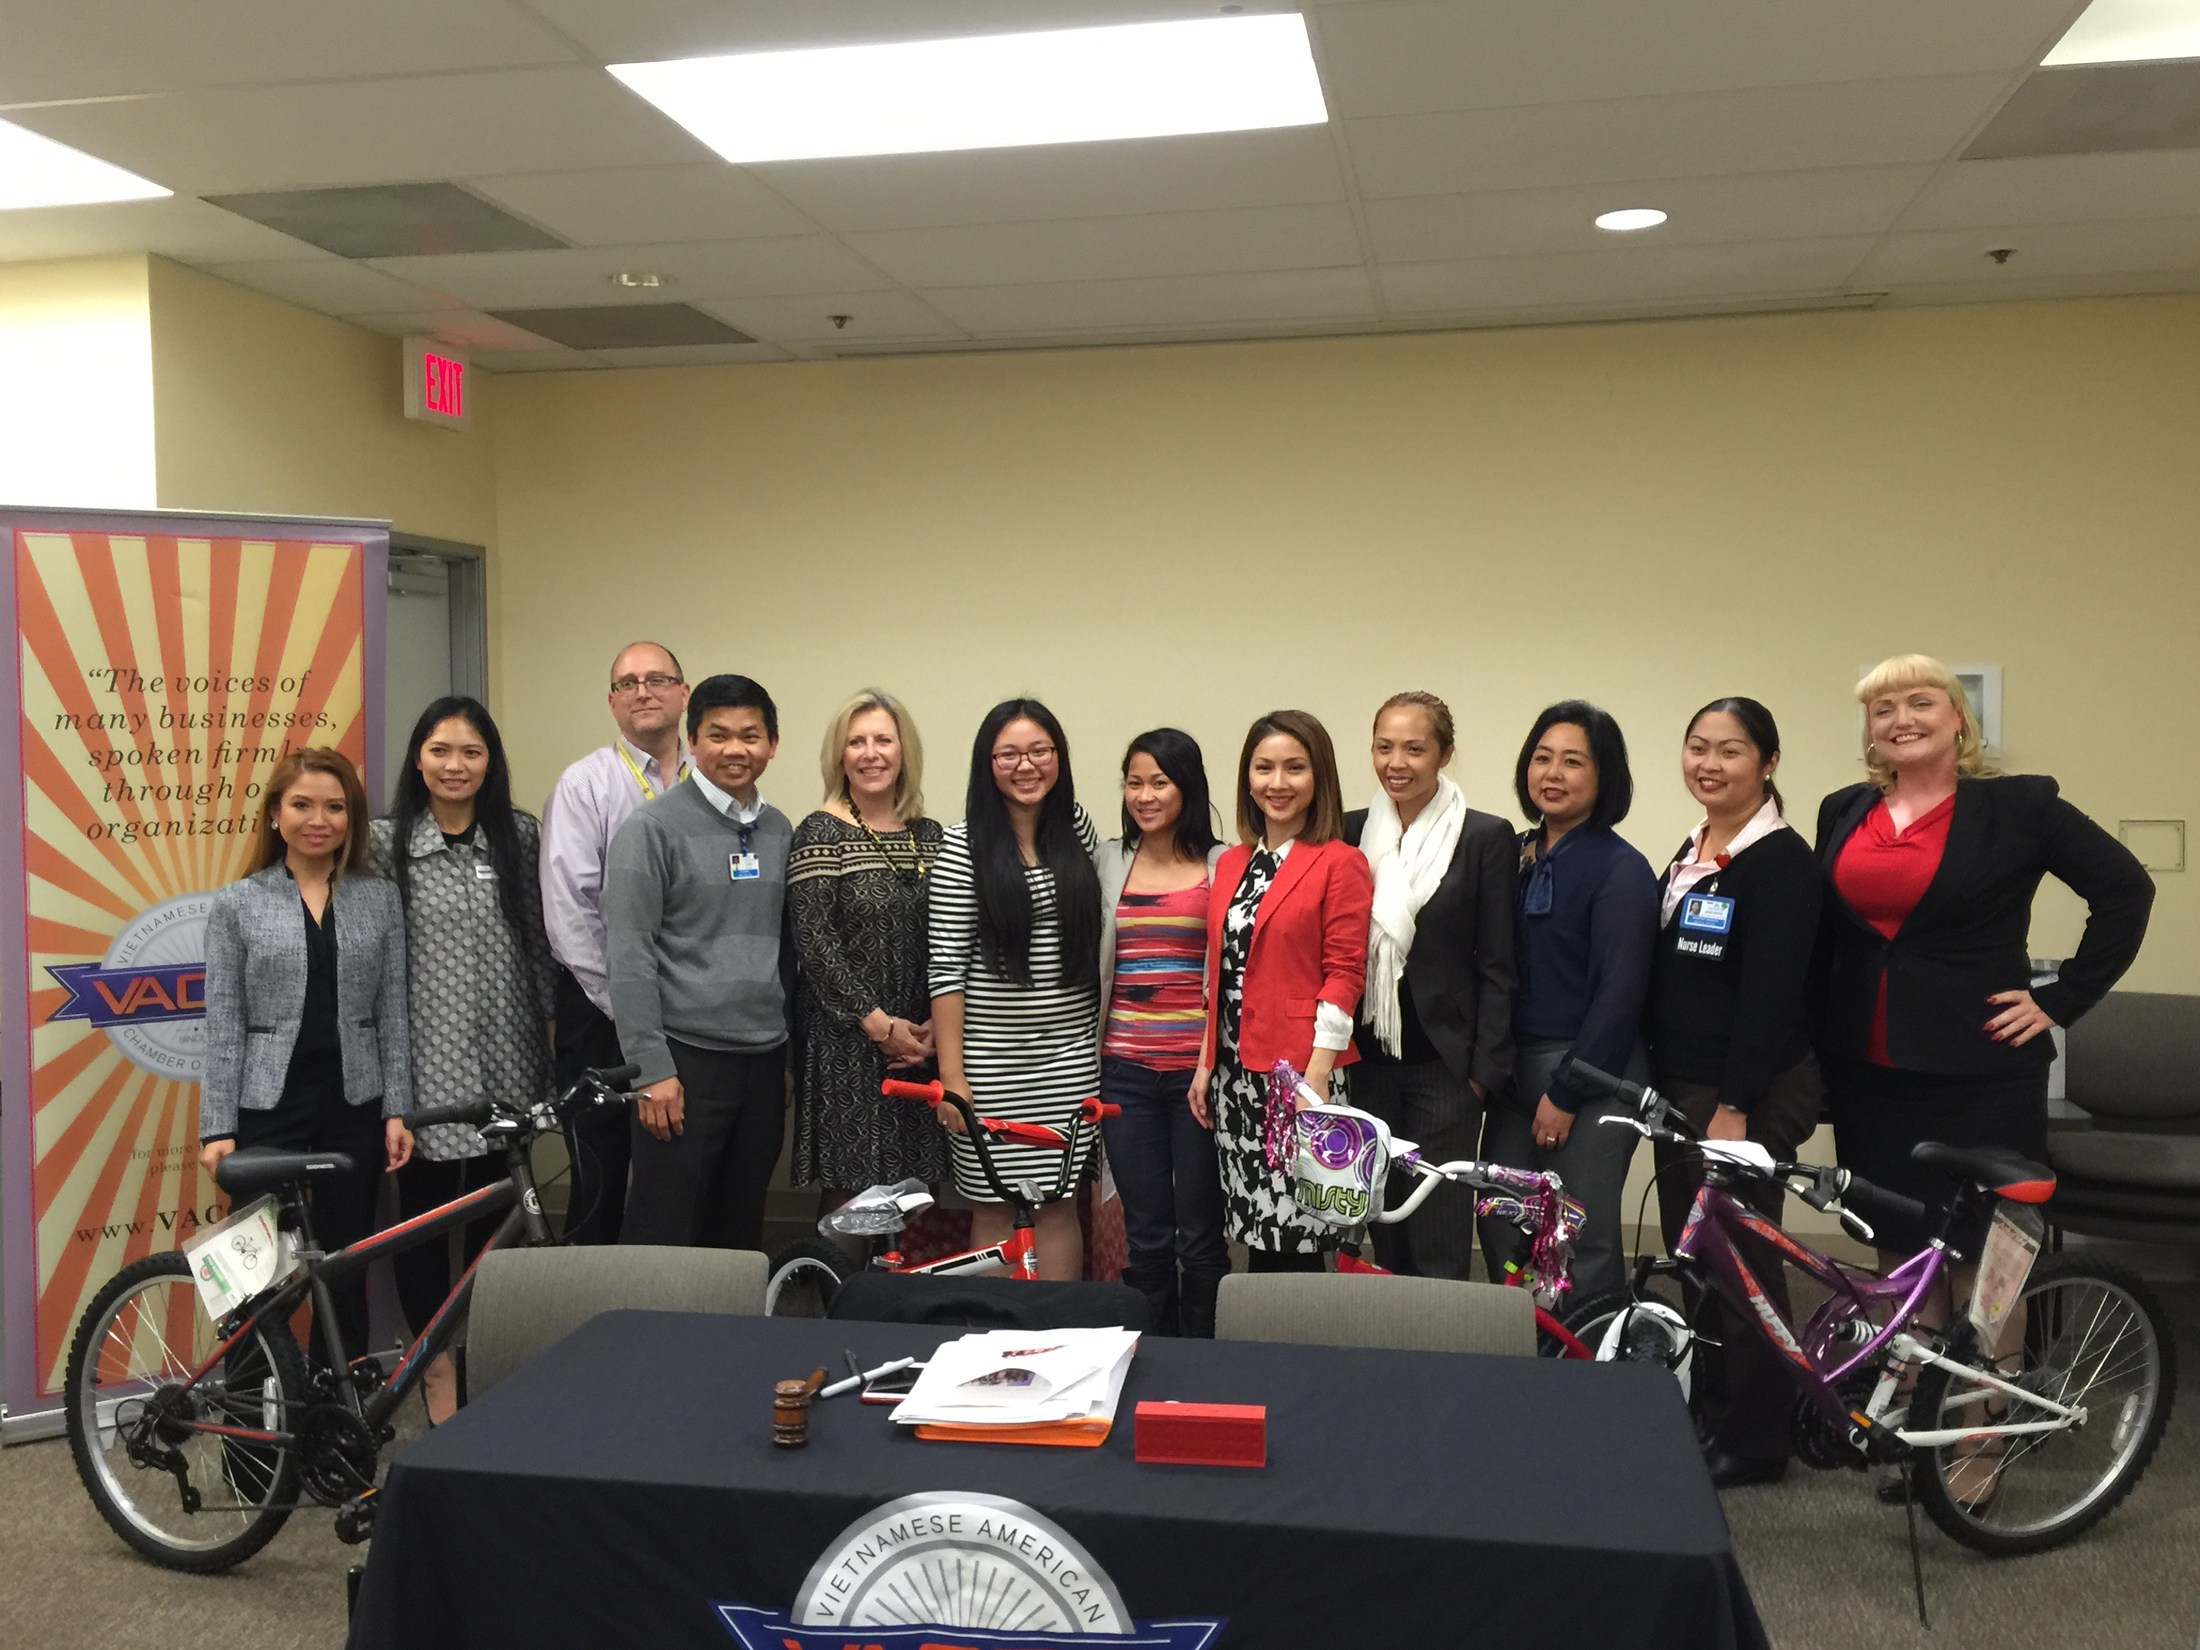 Vietnamese American Chamber of Commerce & Kaiser GG Donated Gifts to Every Child Succeeding